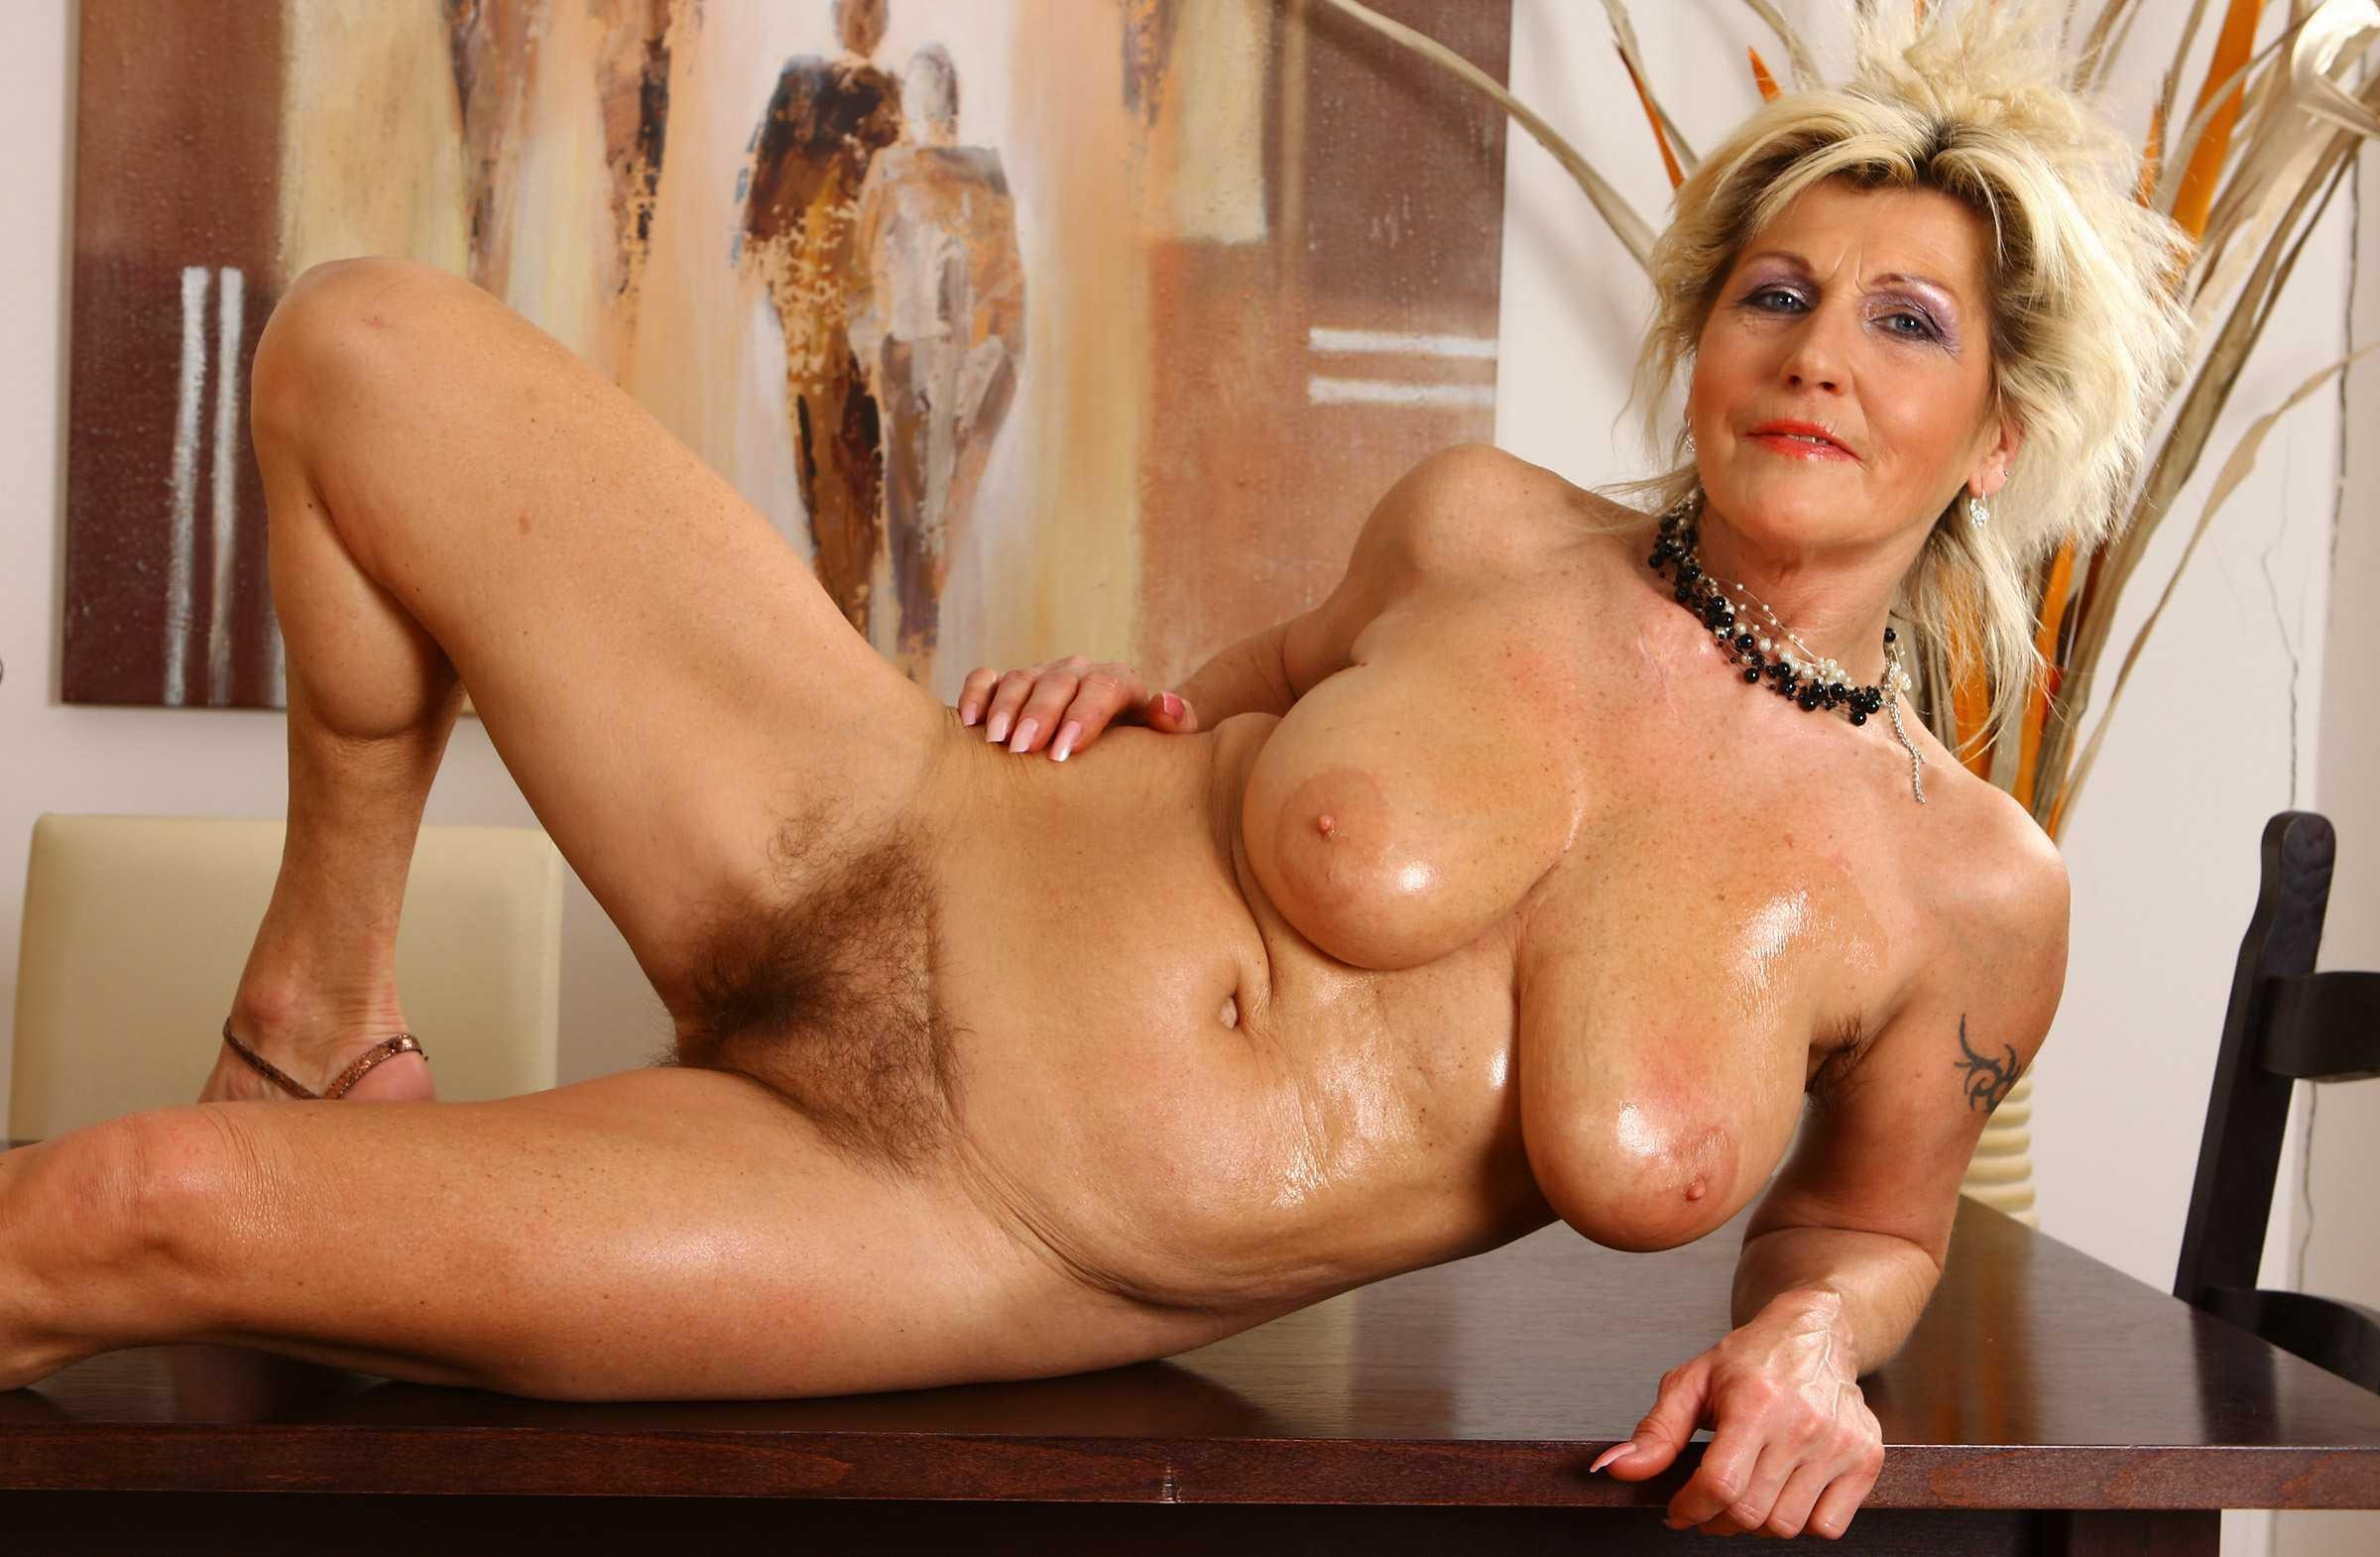 Karups Older Women Free - Mature Older Women Over 30